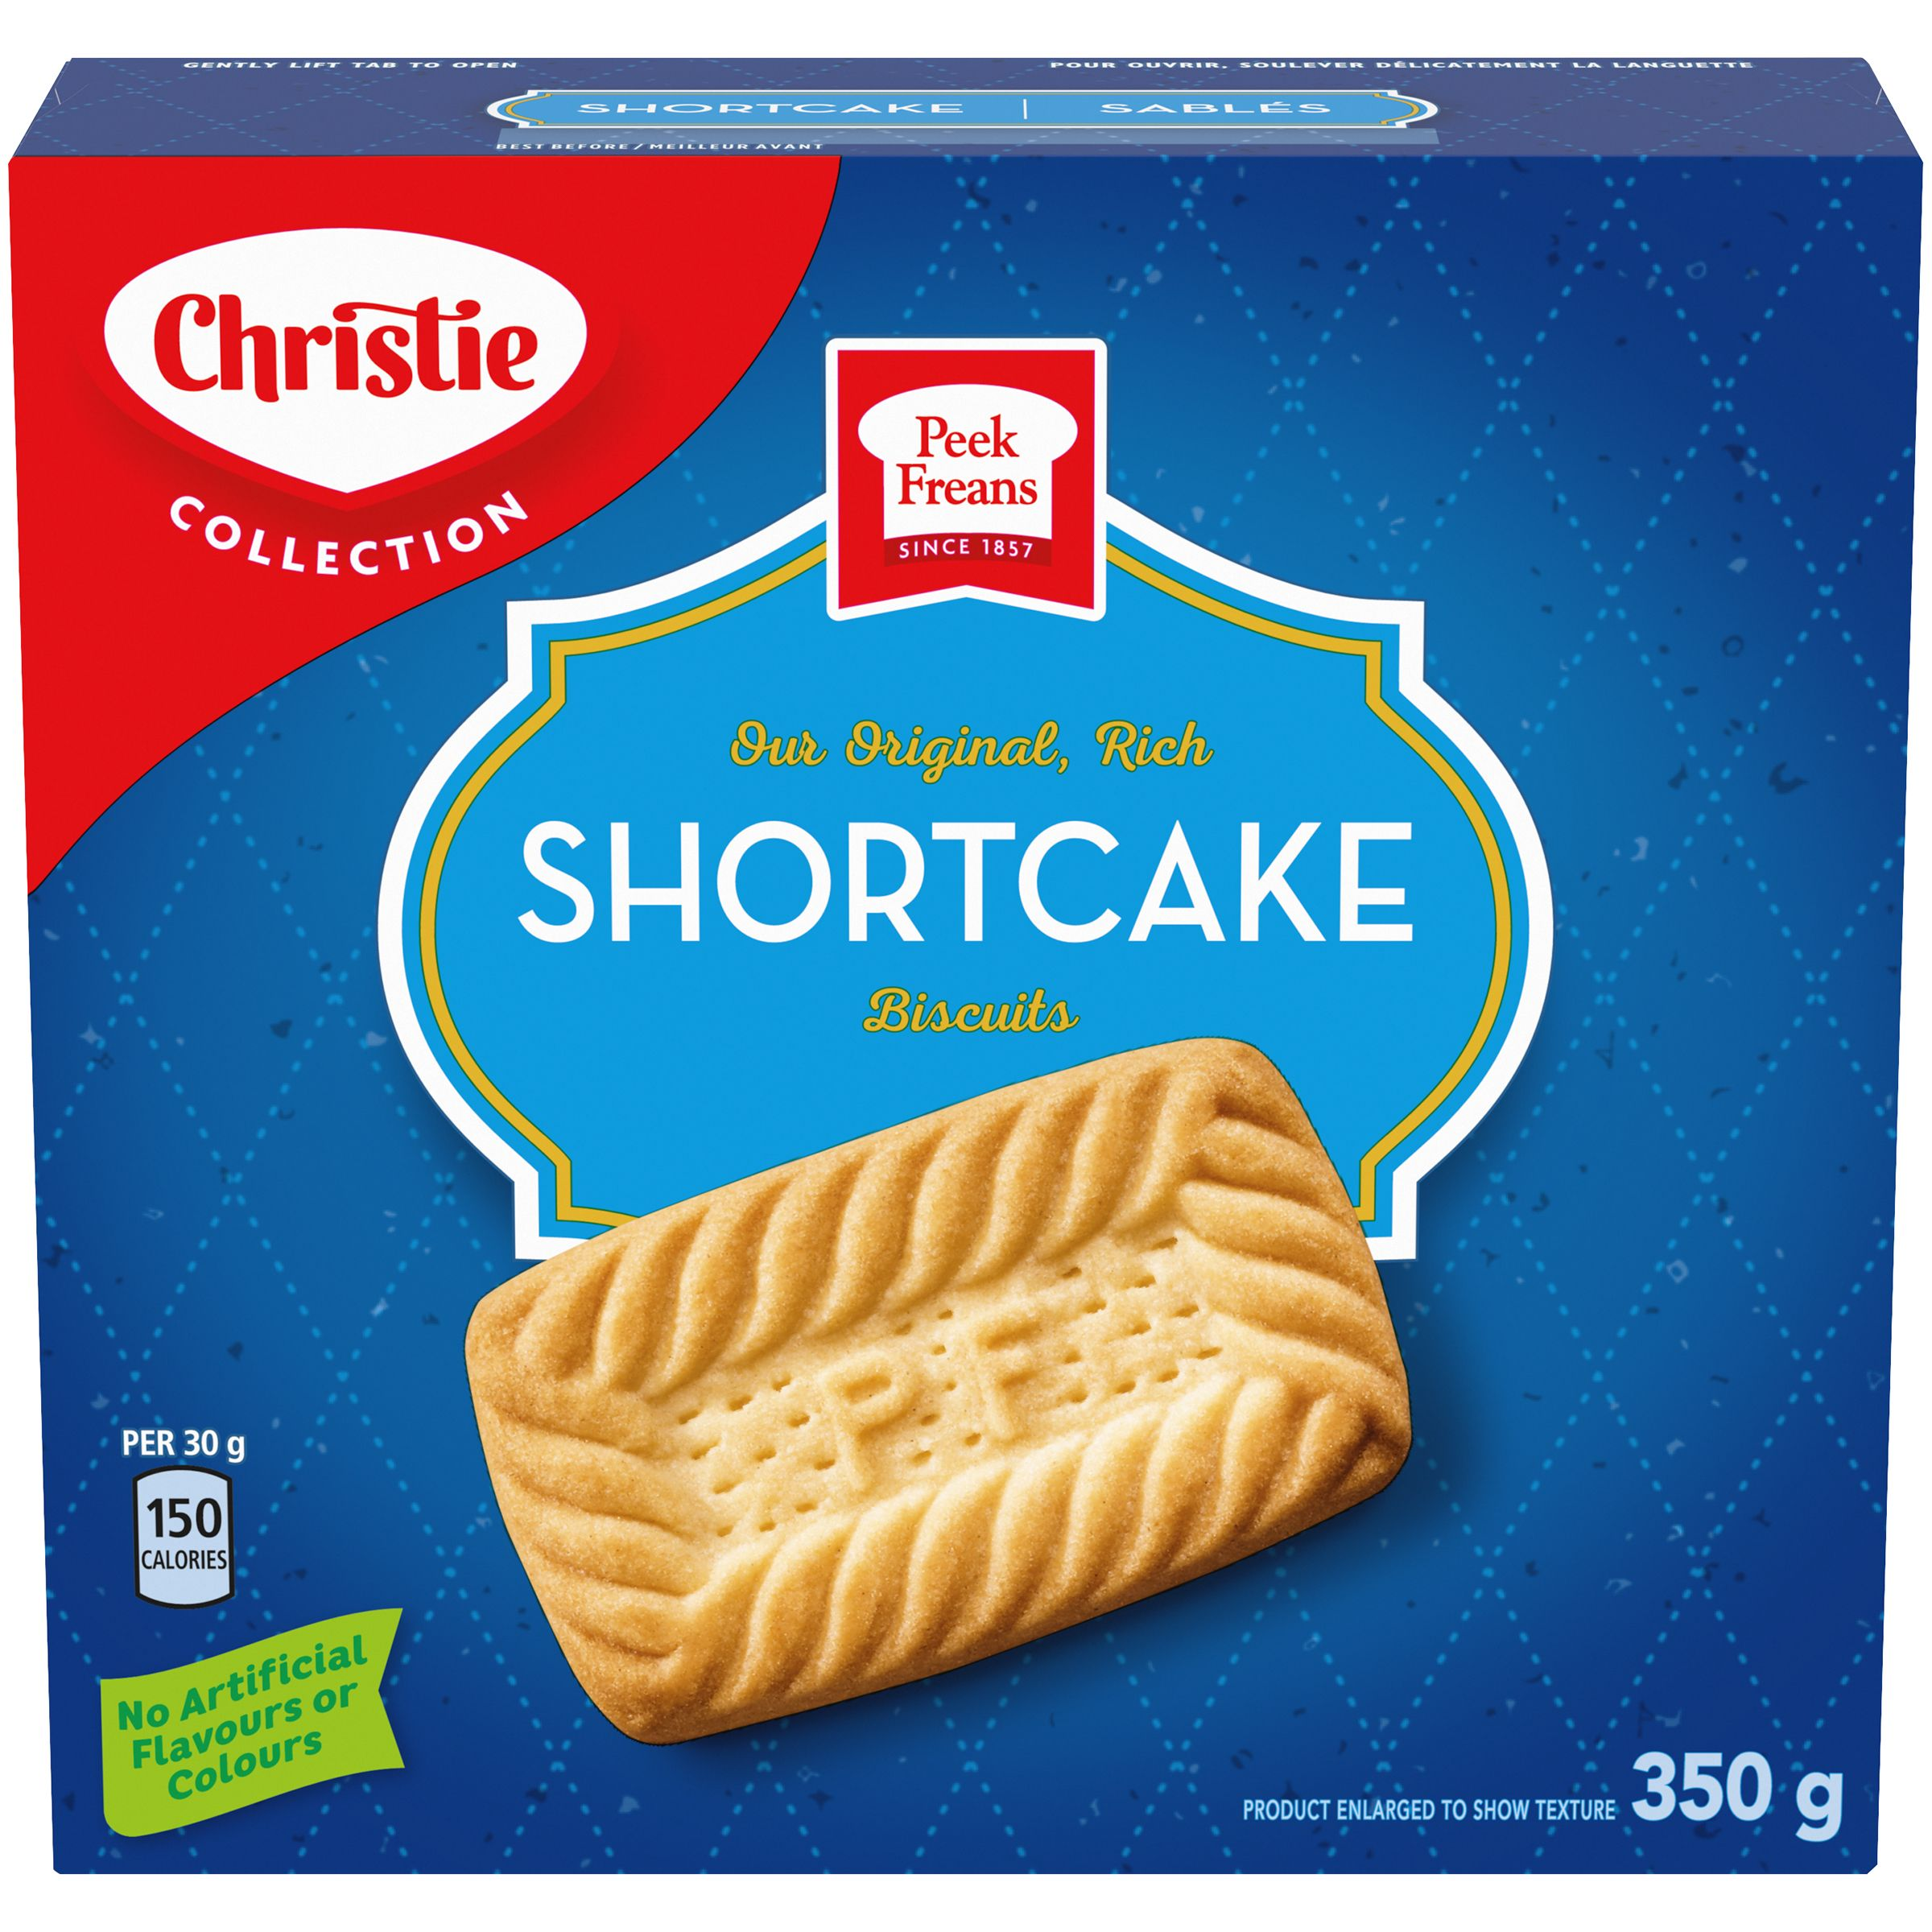 Peek Freans Shortcake Biscuits 350 G